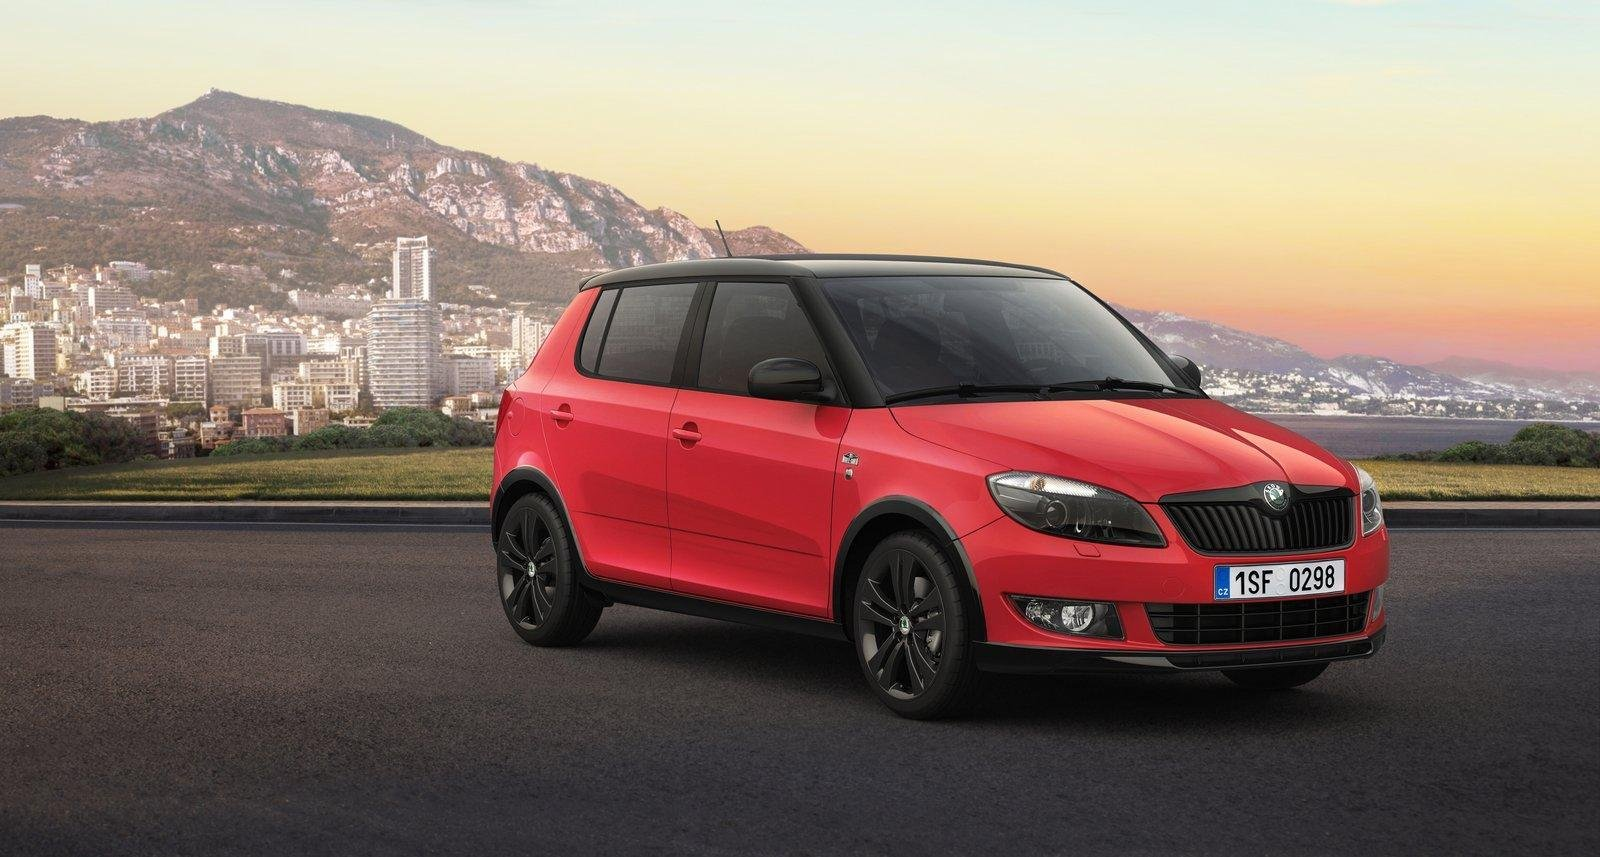 Monte Carlo Car Brand >> 2011 Skoda Fabia Monte Carlo Review - Top Speed